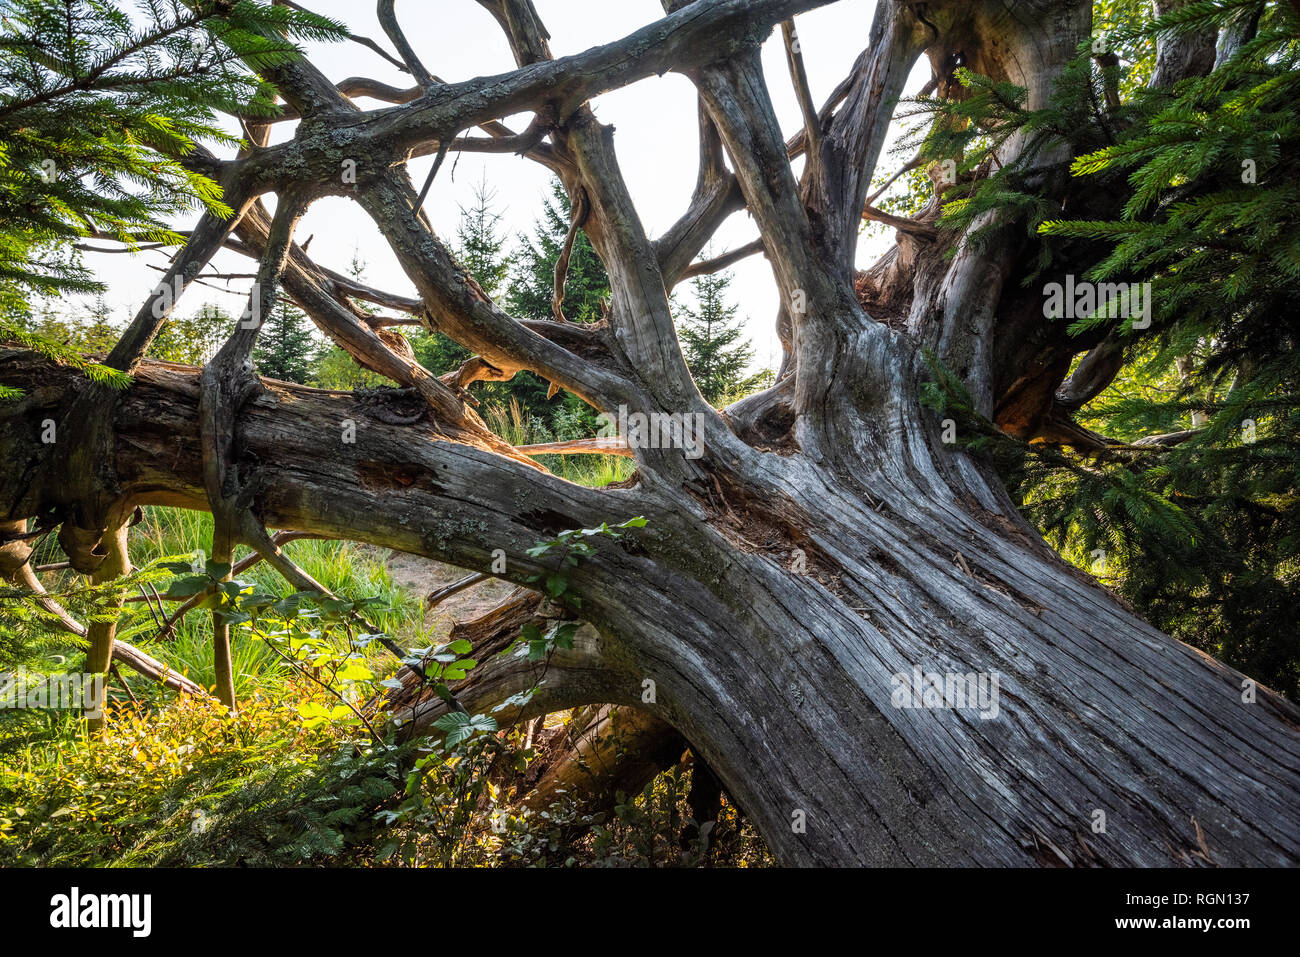 old tree and root, Northern Black Forest, Germany, strictly protected conservation forest and nature trail Lotharpfad, deadwood by windthrow Stock Photo